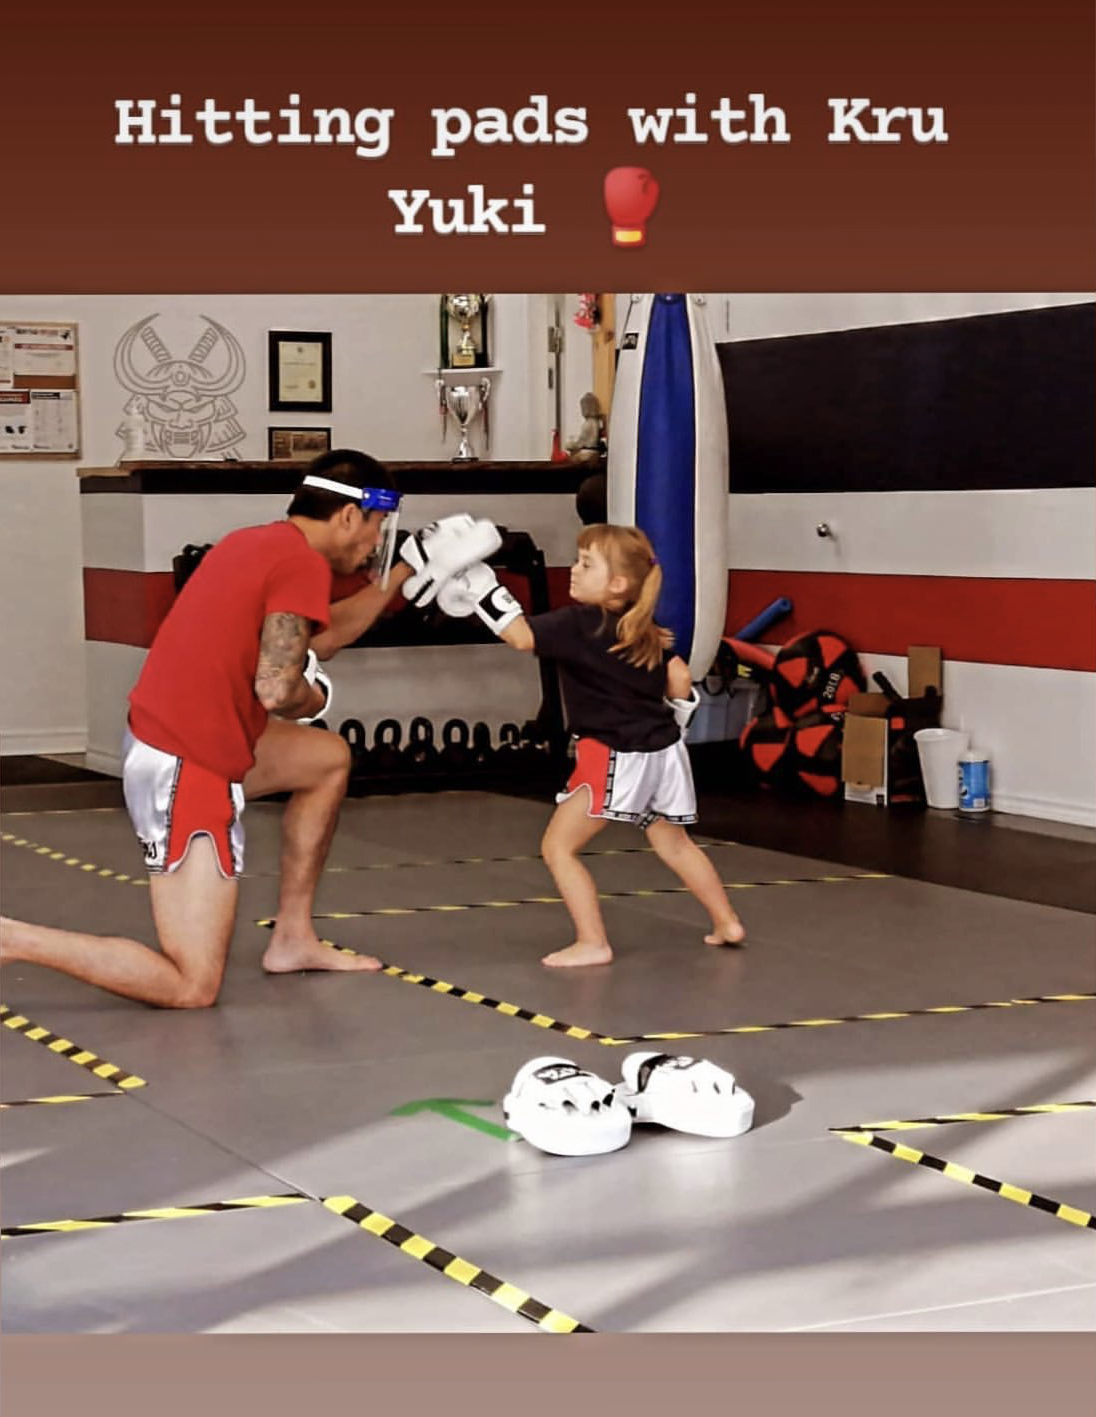 Kru Yuki and one of our little nak muays hitting pads while wearing PPE